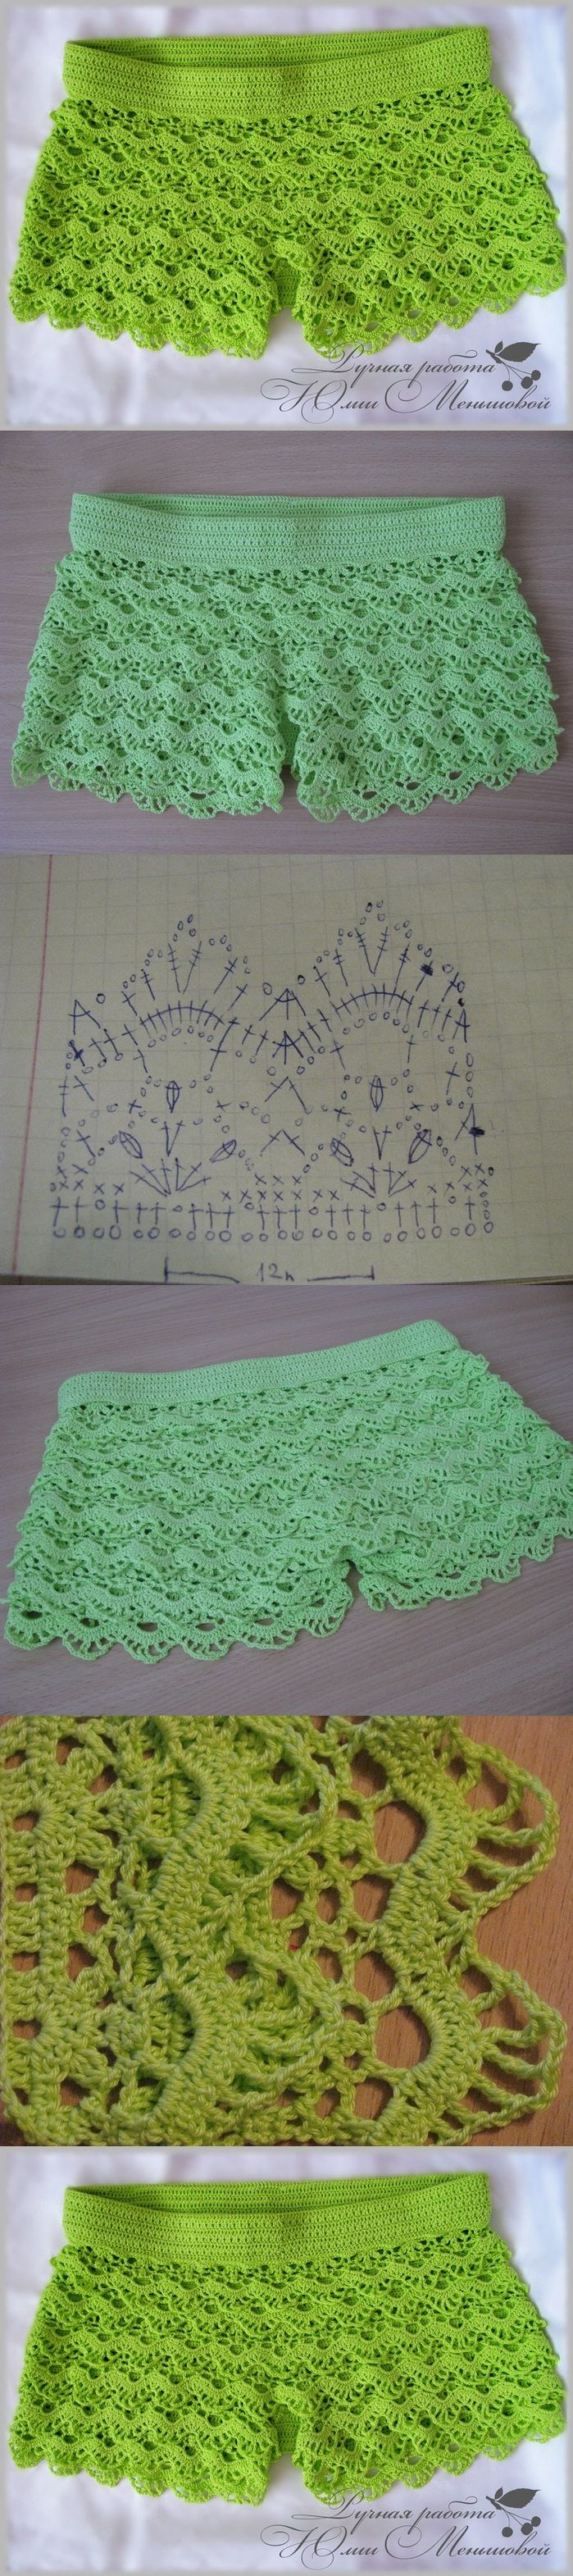 Crochet so beauty shorts,       ♪ ♪ ... #inspiration #DIY GB http://www.pinterest.com/gigibrazil/boards/